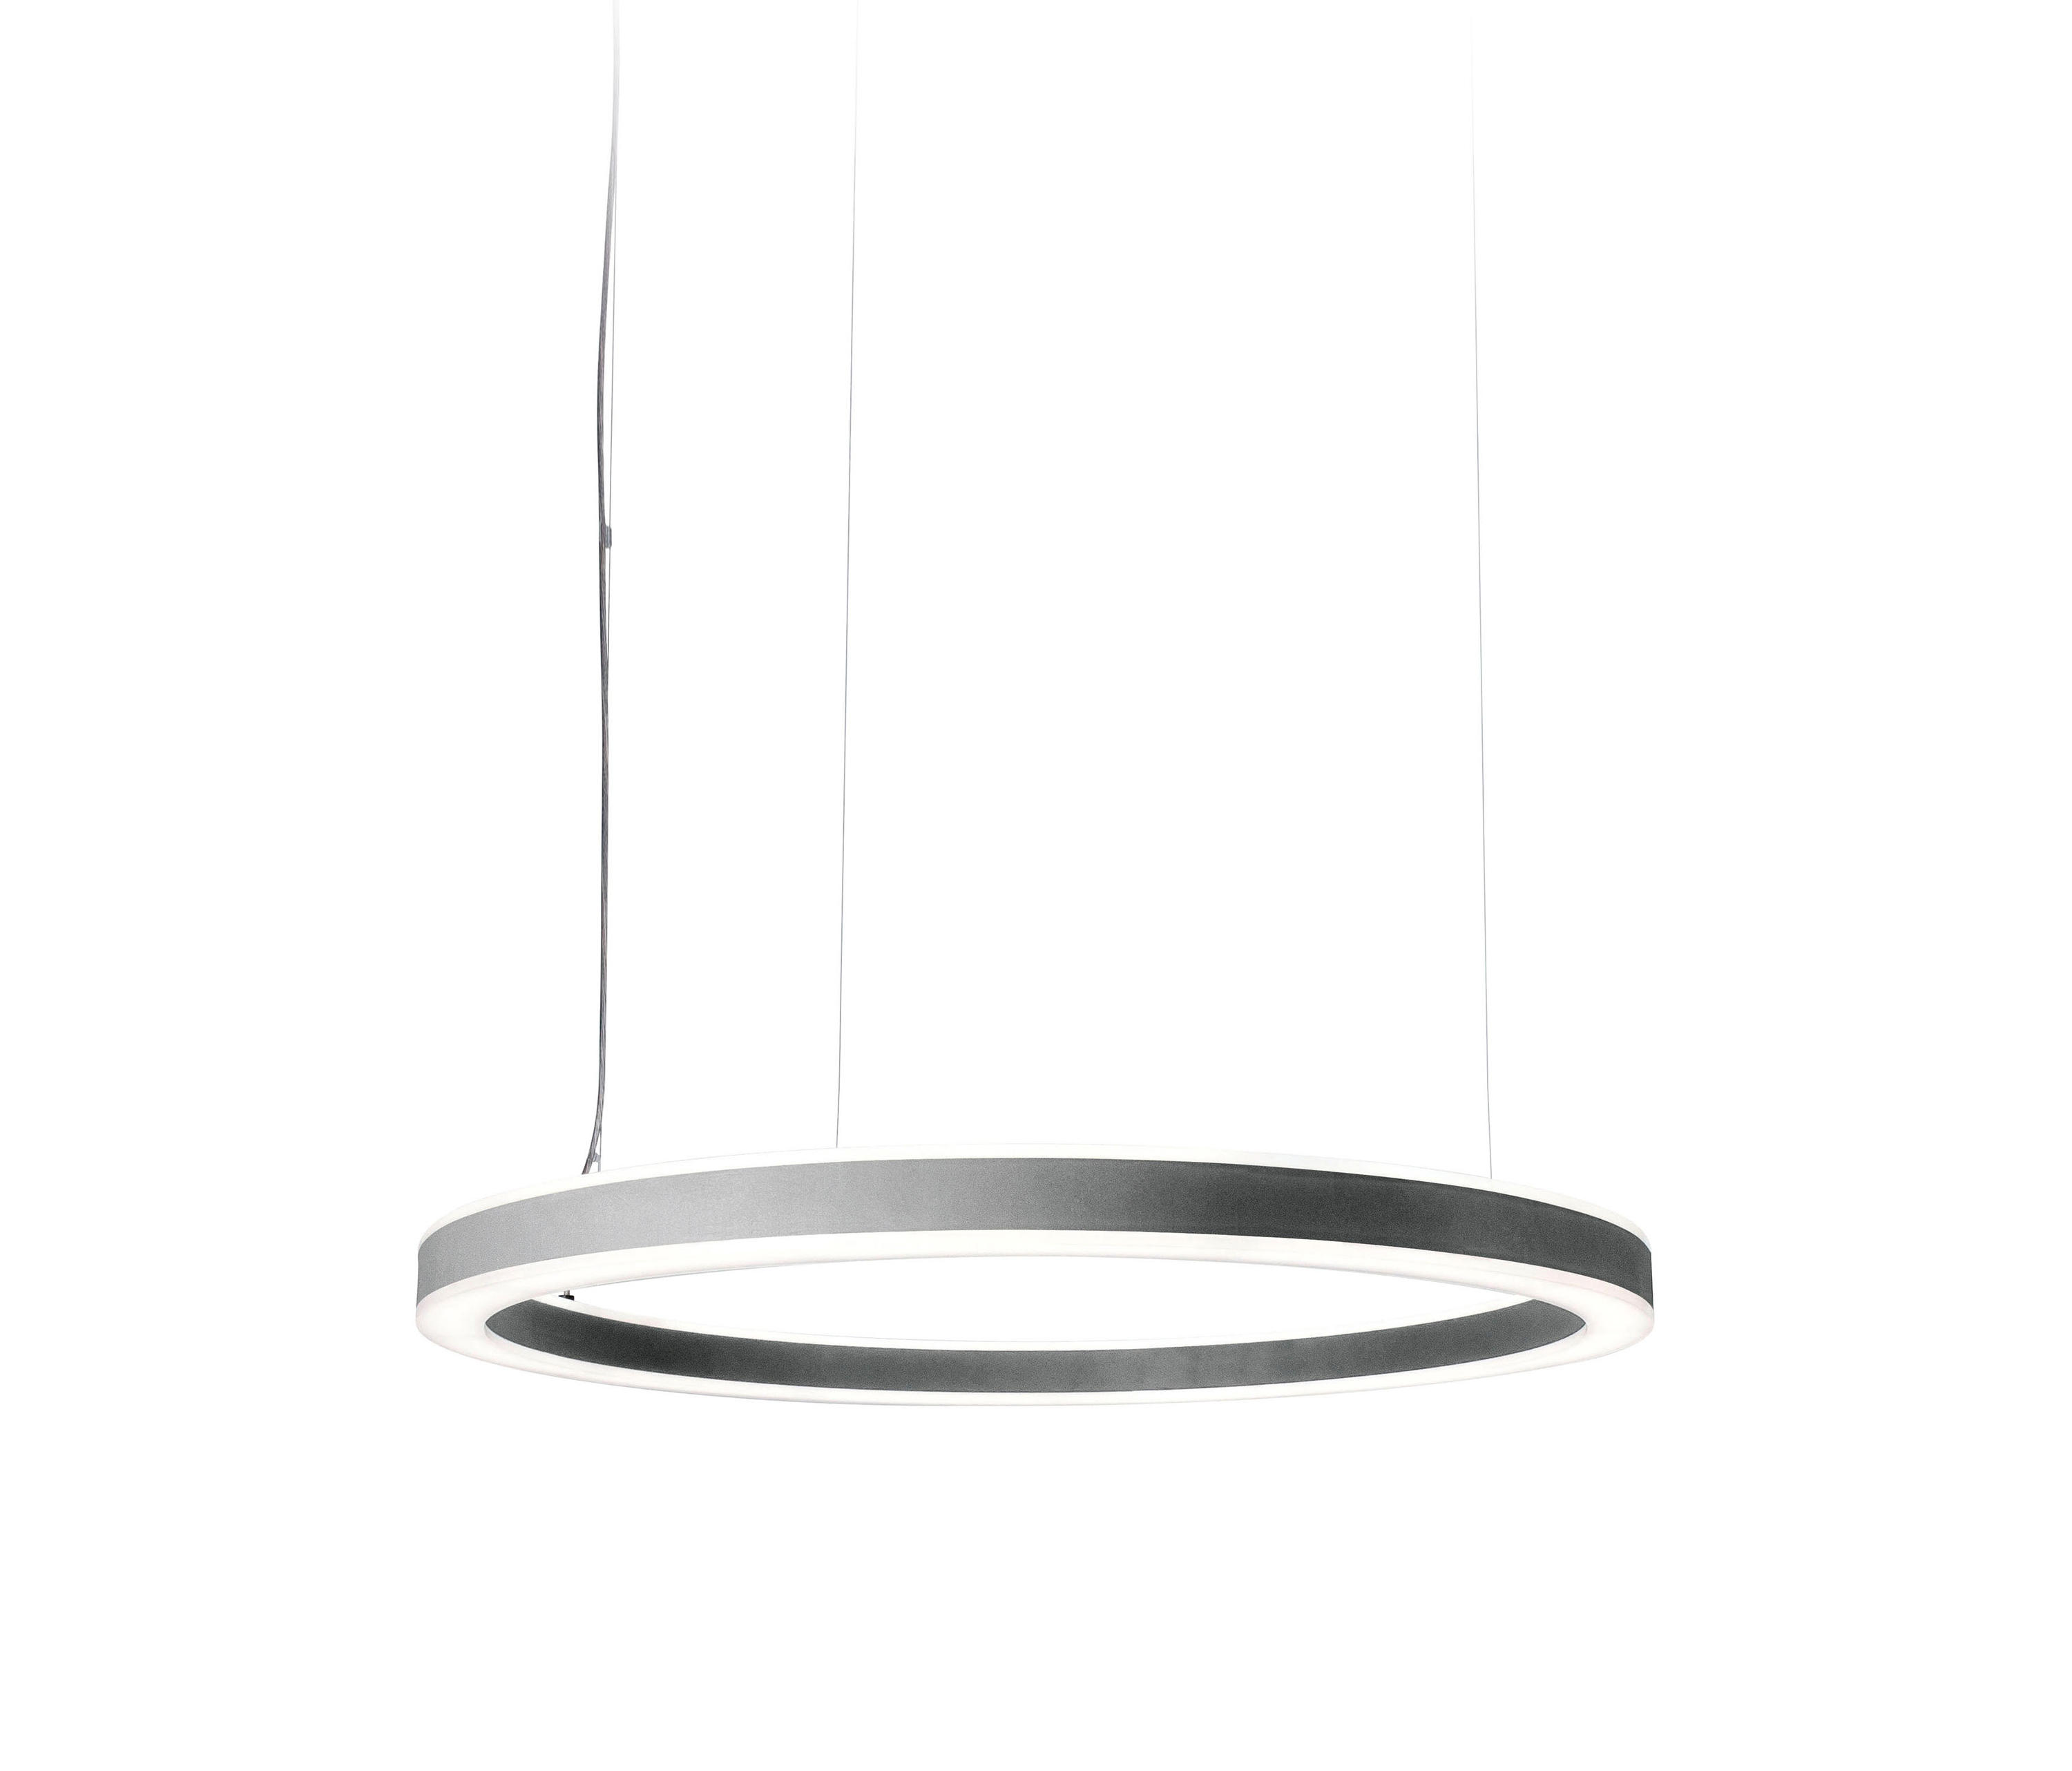 Halo Hl General Lighting From Planlicht Architonic